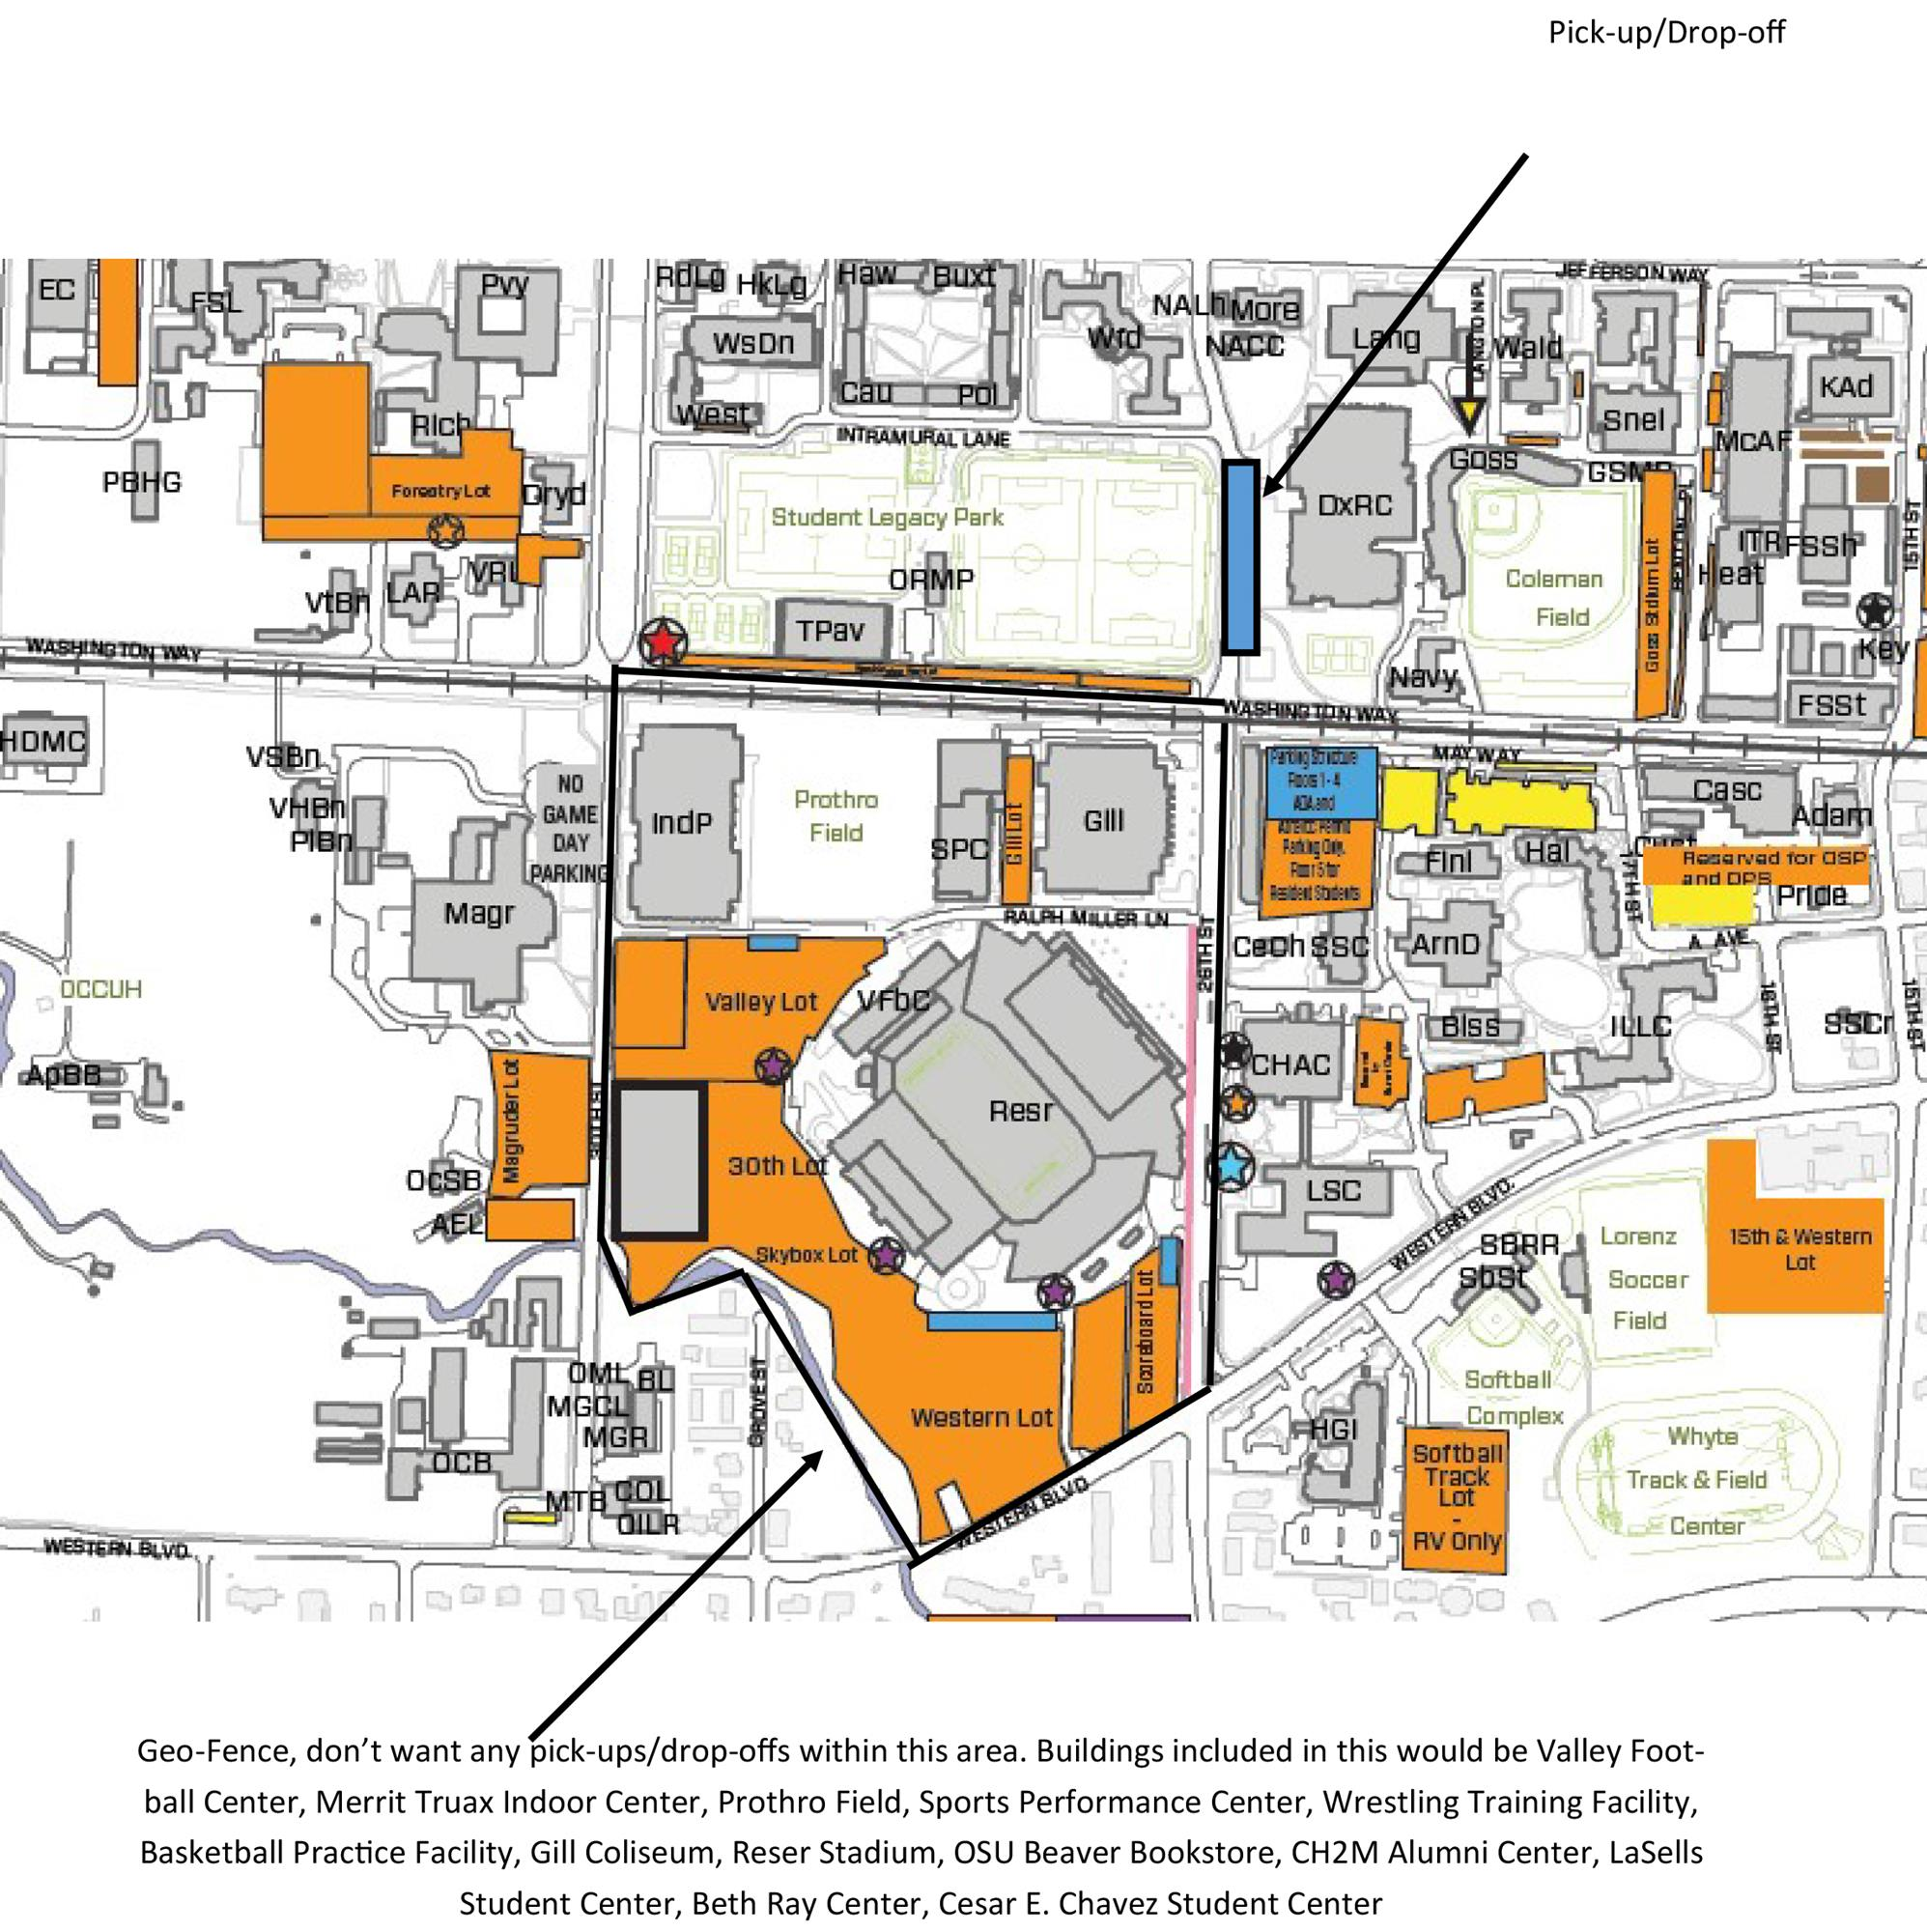 map as you e and go to Oregon State Home football games This service is also available for all Oregon State sporting events and drop off pick up